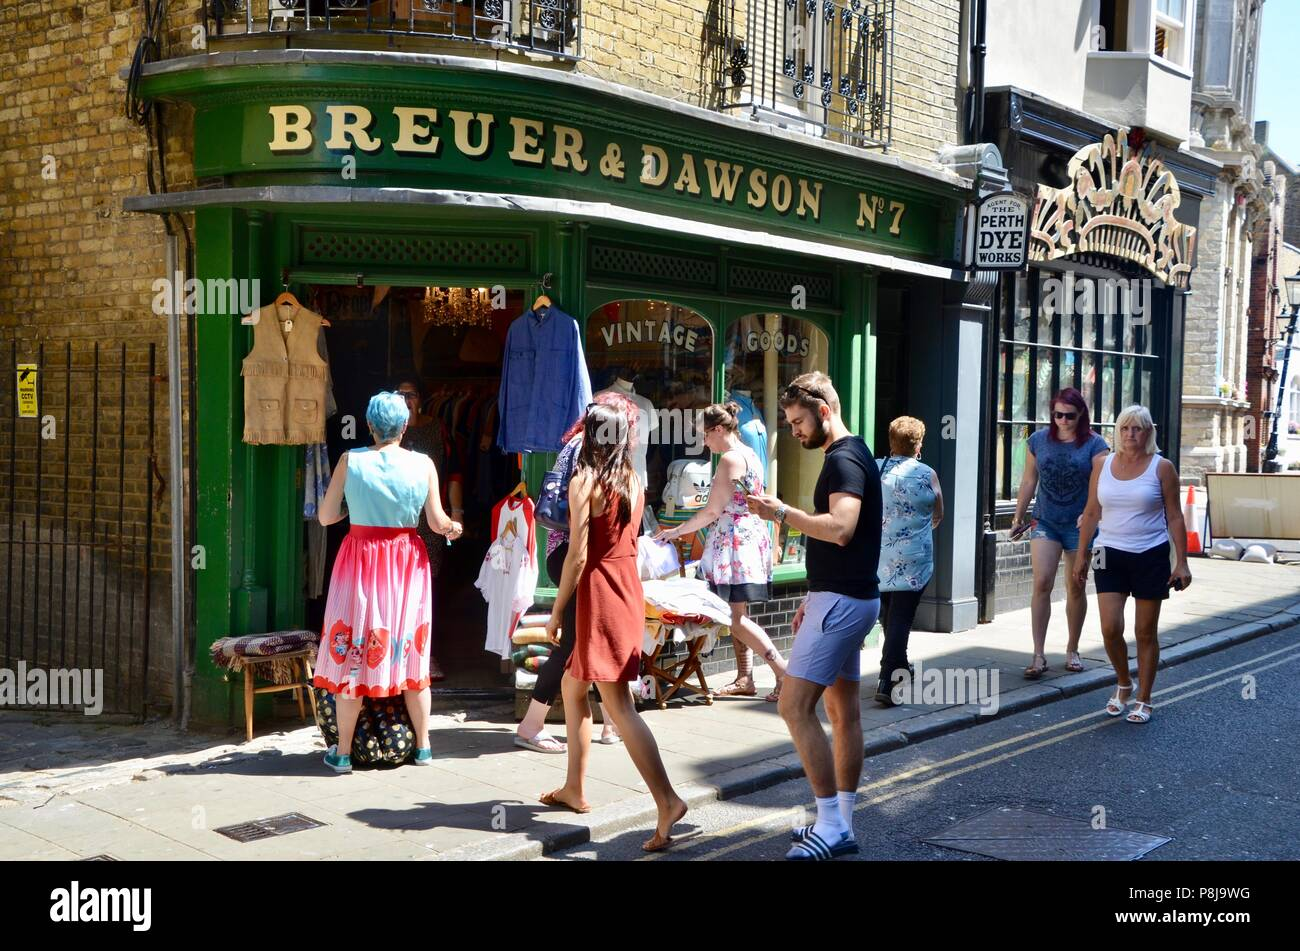 fashion clothes shoppers outside the breuer and dawson vintage clothes shop margate kent uk - Stock Image